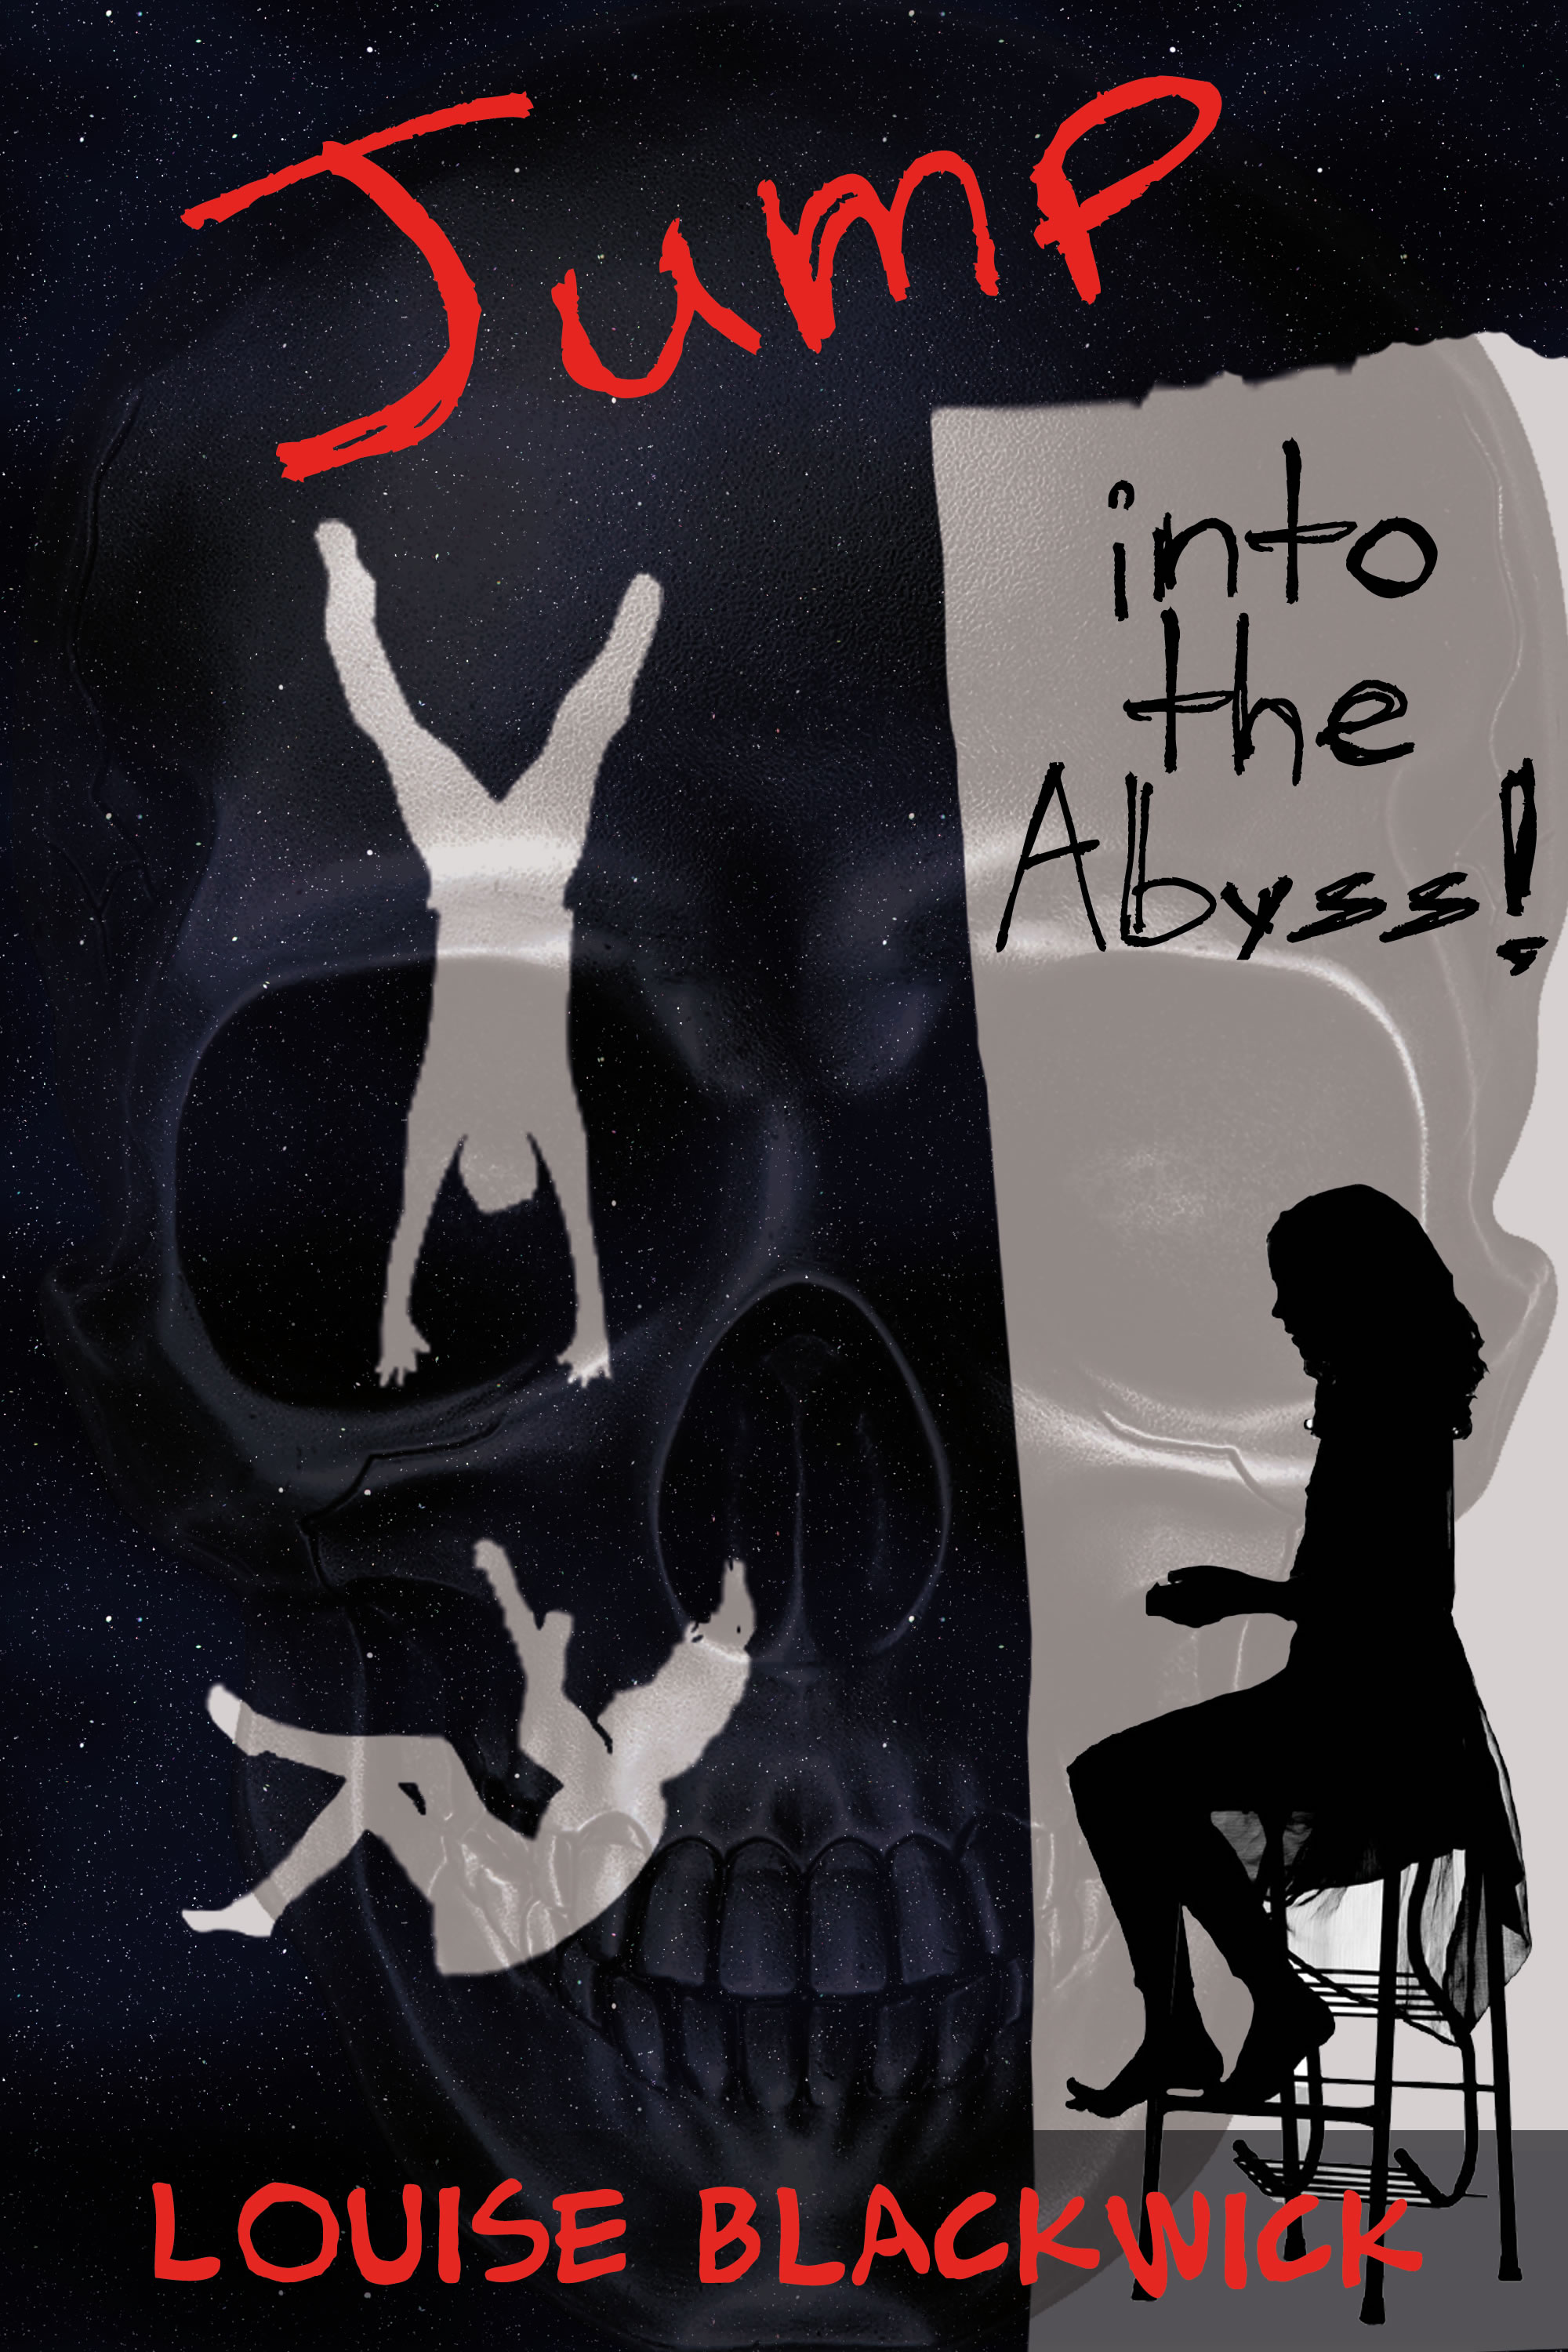 Smashwords – Jump into the Abyss! – a book by Louise Blackwick